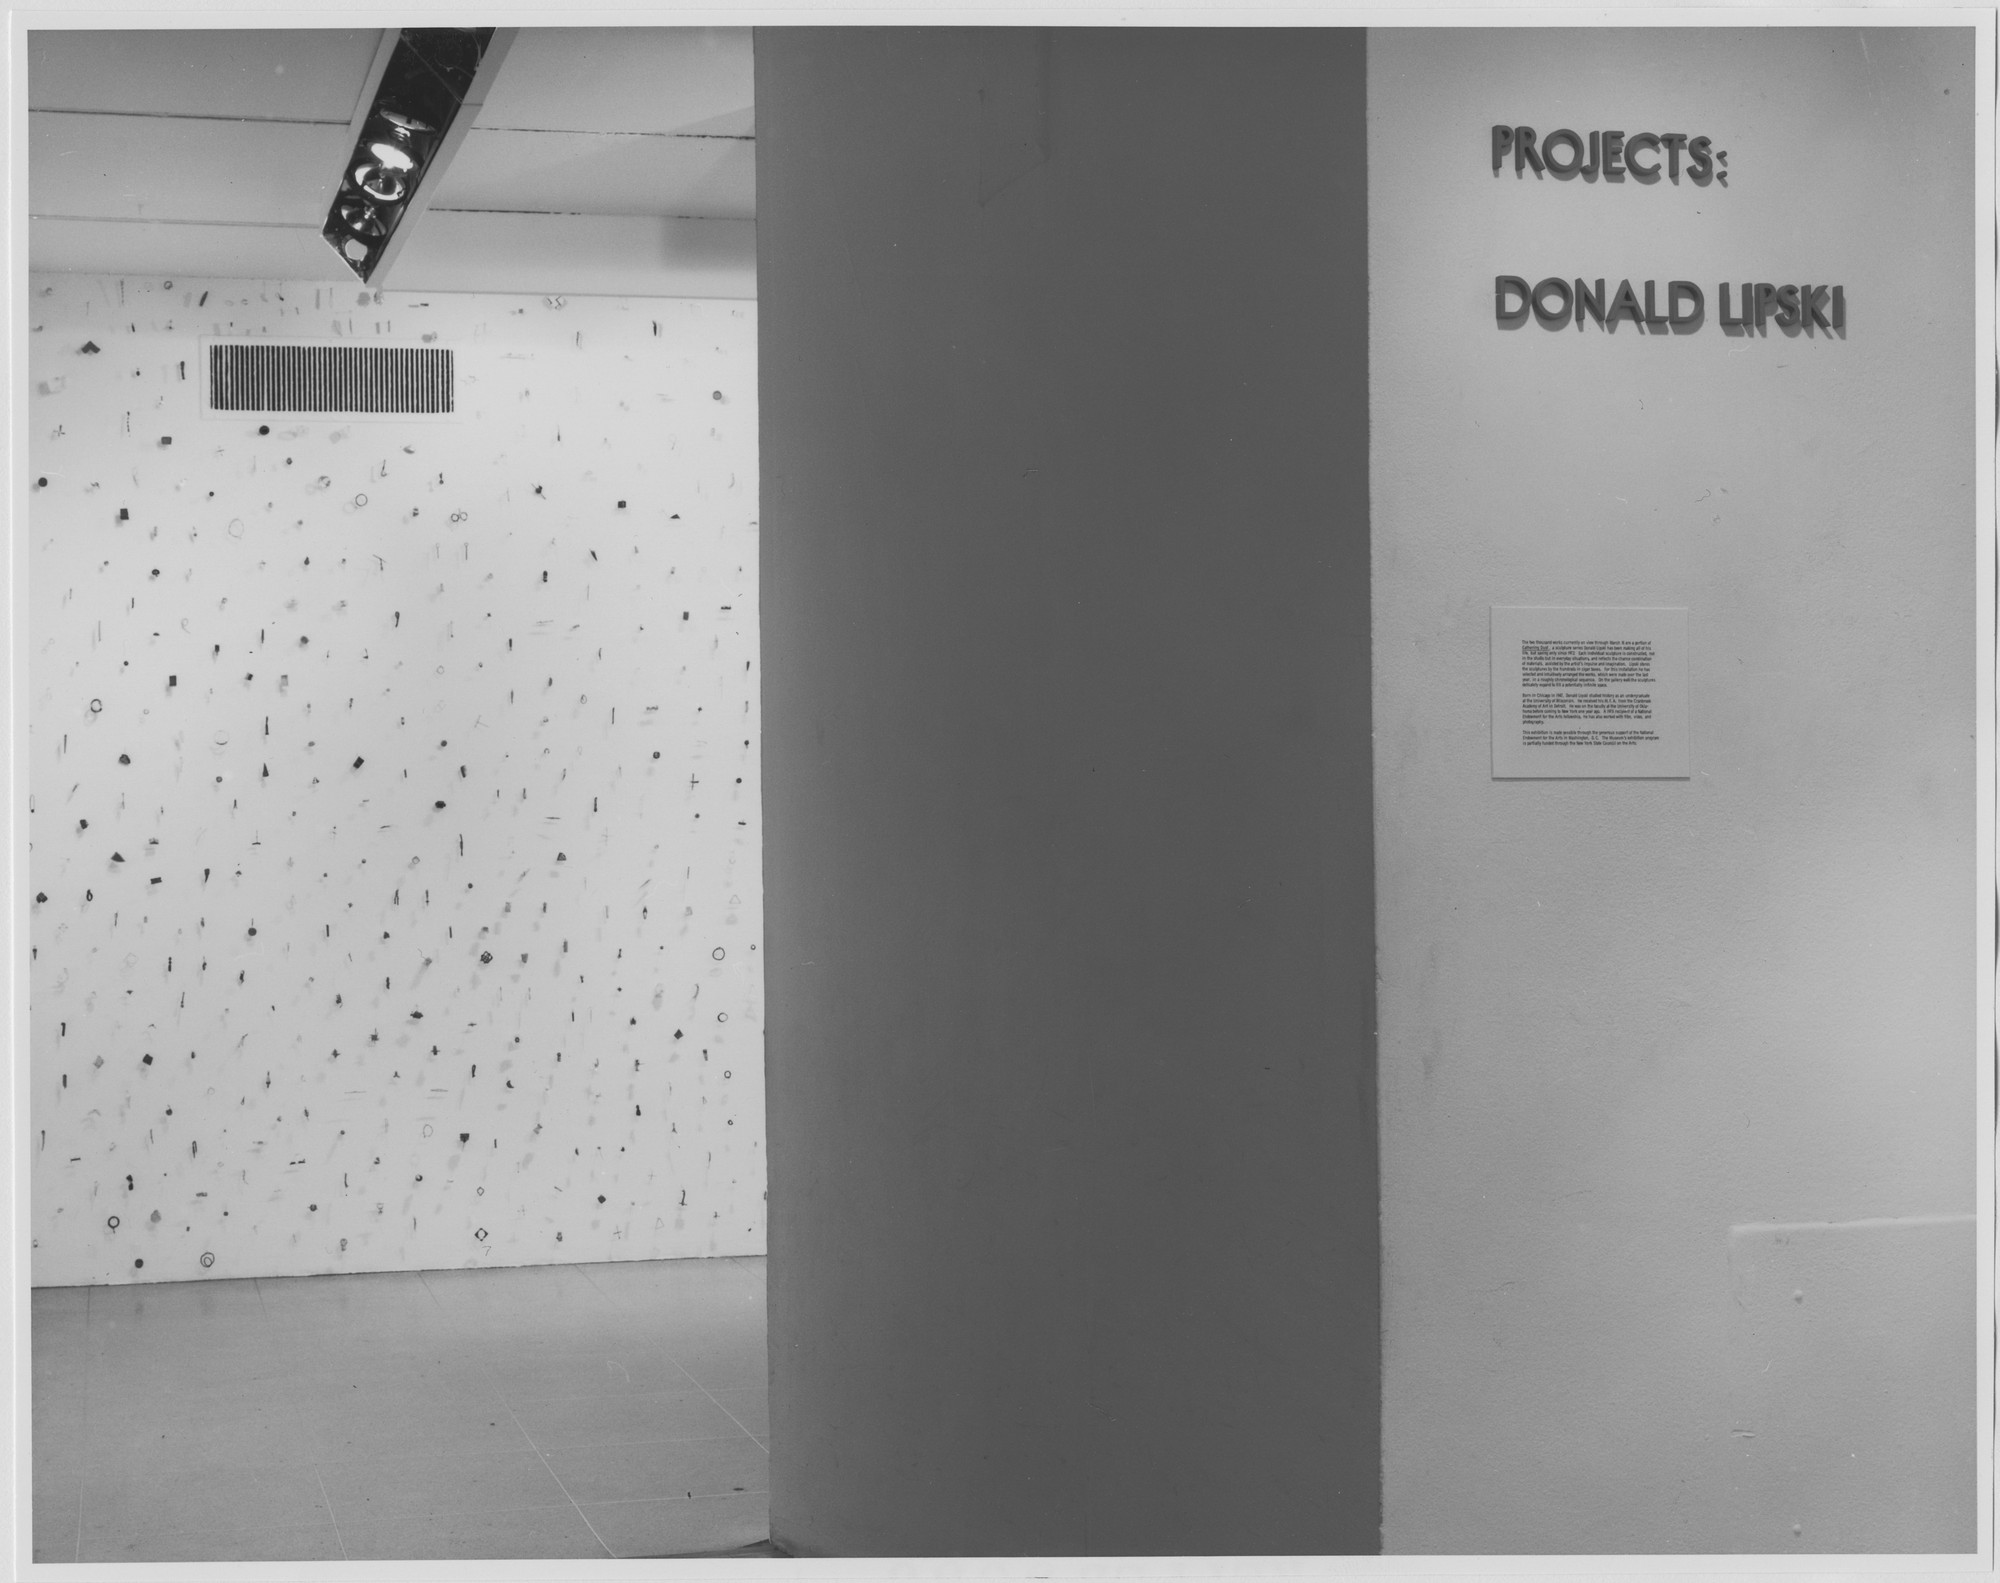 "Installation view of the exhibition, ""Projects: Donald Lipski"" February 8, 1979–March 18, 1979. Photographic Archive. The Museum of Modern Art Archives, New York. IN1248.1. Photograph by Katherine Keller."